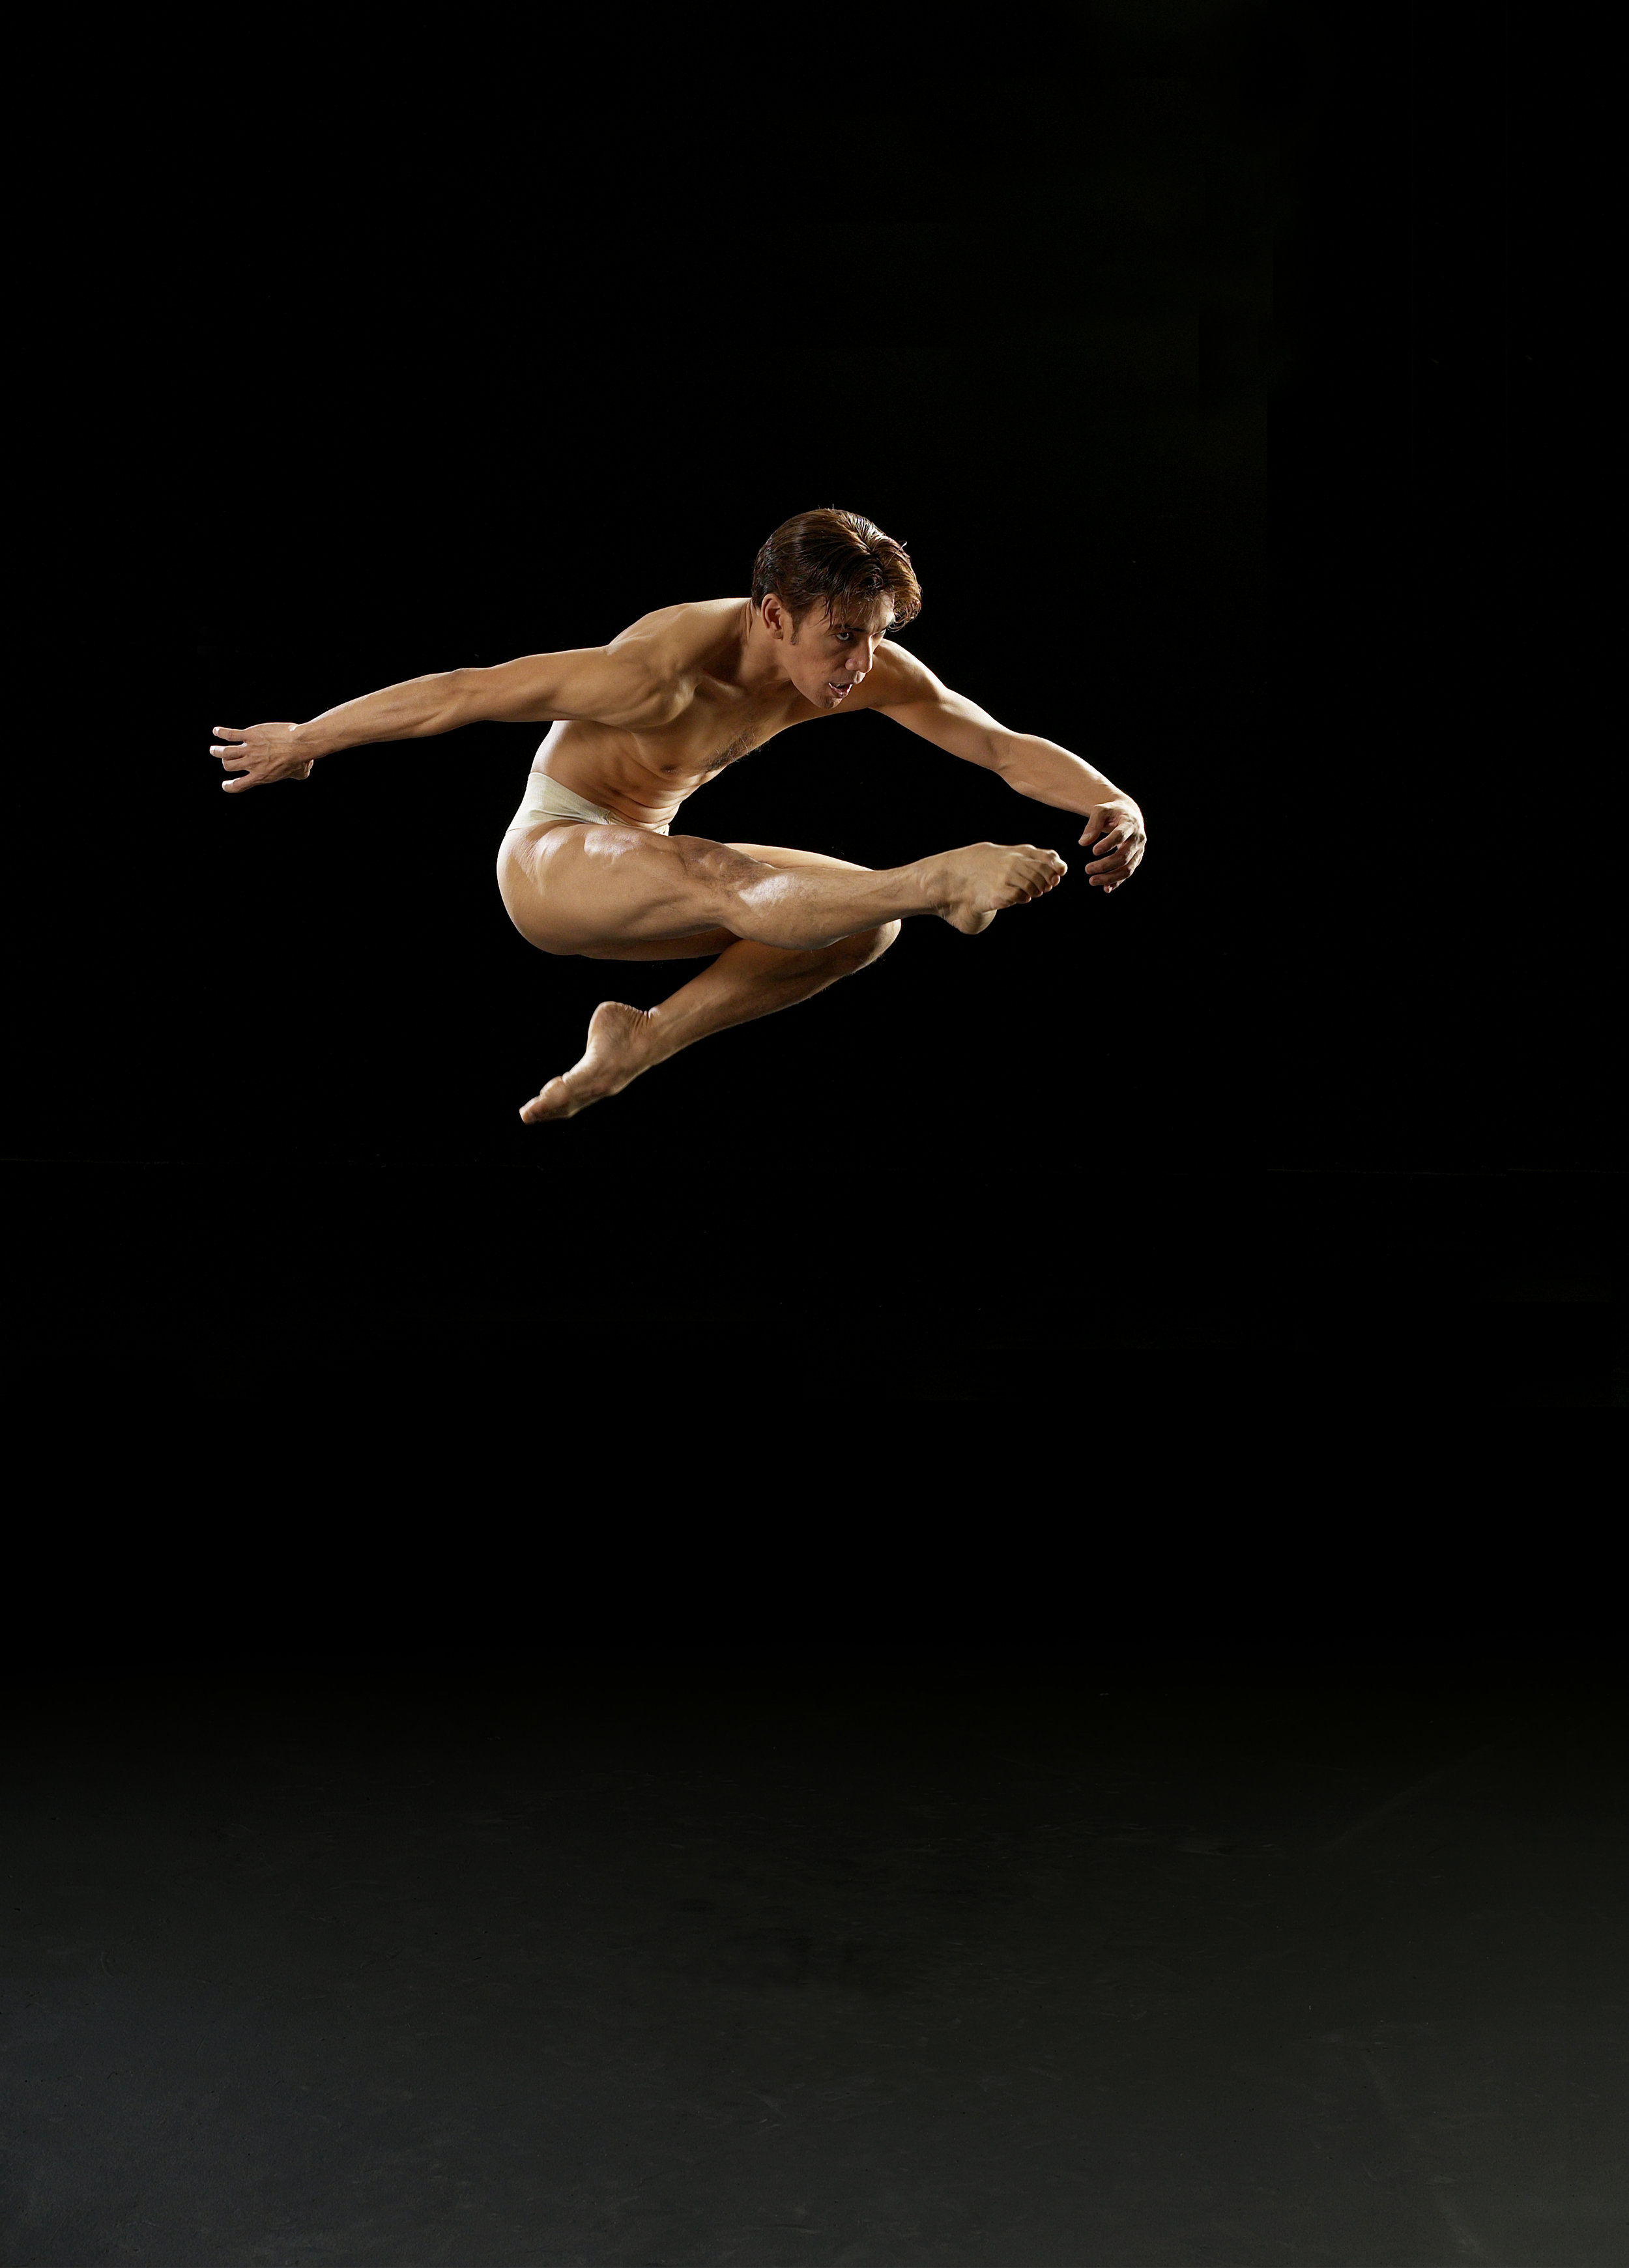 """This stunning portrait of Osias """"Shaz"""" Barroso, taken by G-nie Arambulo, shows the dancing form that entranced Filipino ballet audiences for years. Today, as Ballet Manila's co-artistic director and rehearsal master, he is a mentor to a new generation of dancers."""